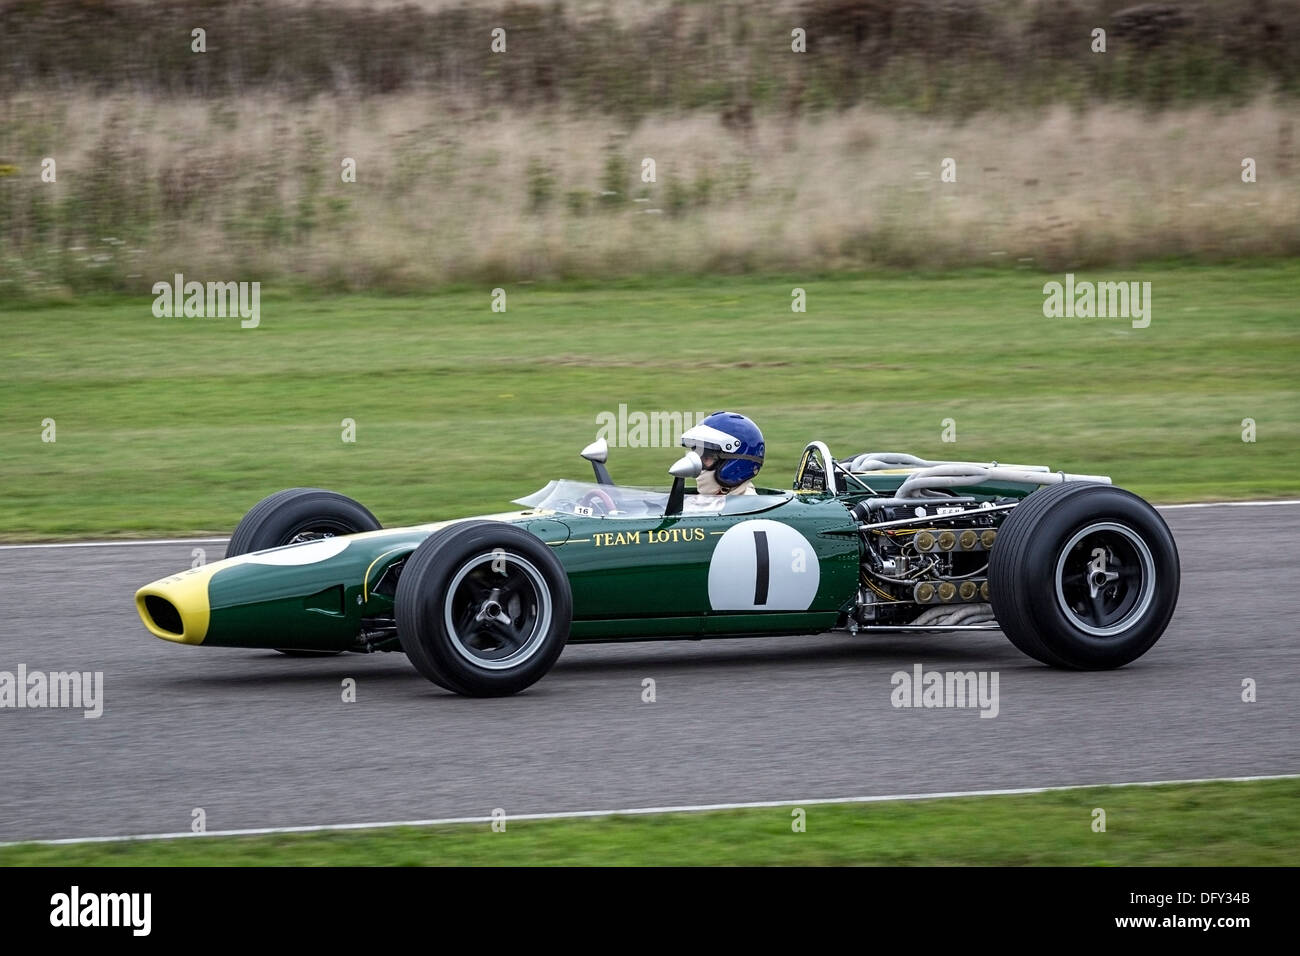 jim clarke 39 s 1966 lotus brm 43 grand prix winning cars at the tribute stock photo royalty free. Black Bedroom Furniture Sets. Home Design Ideas